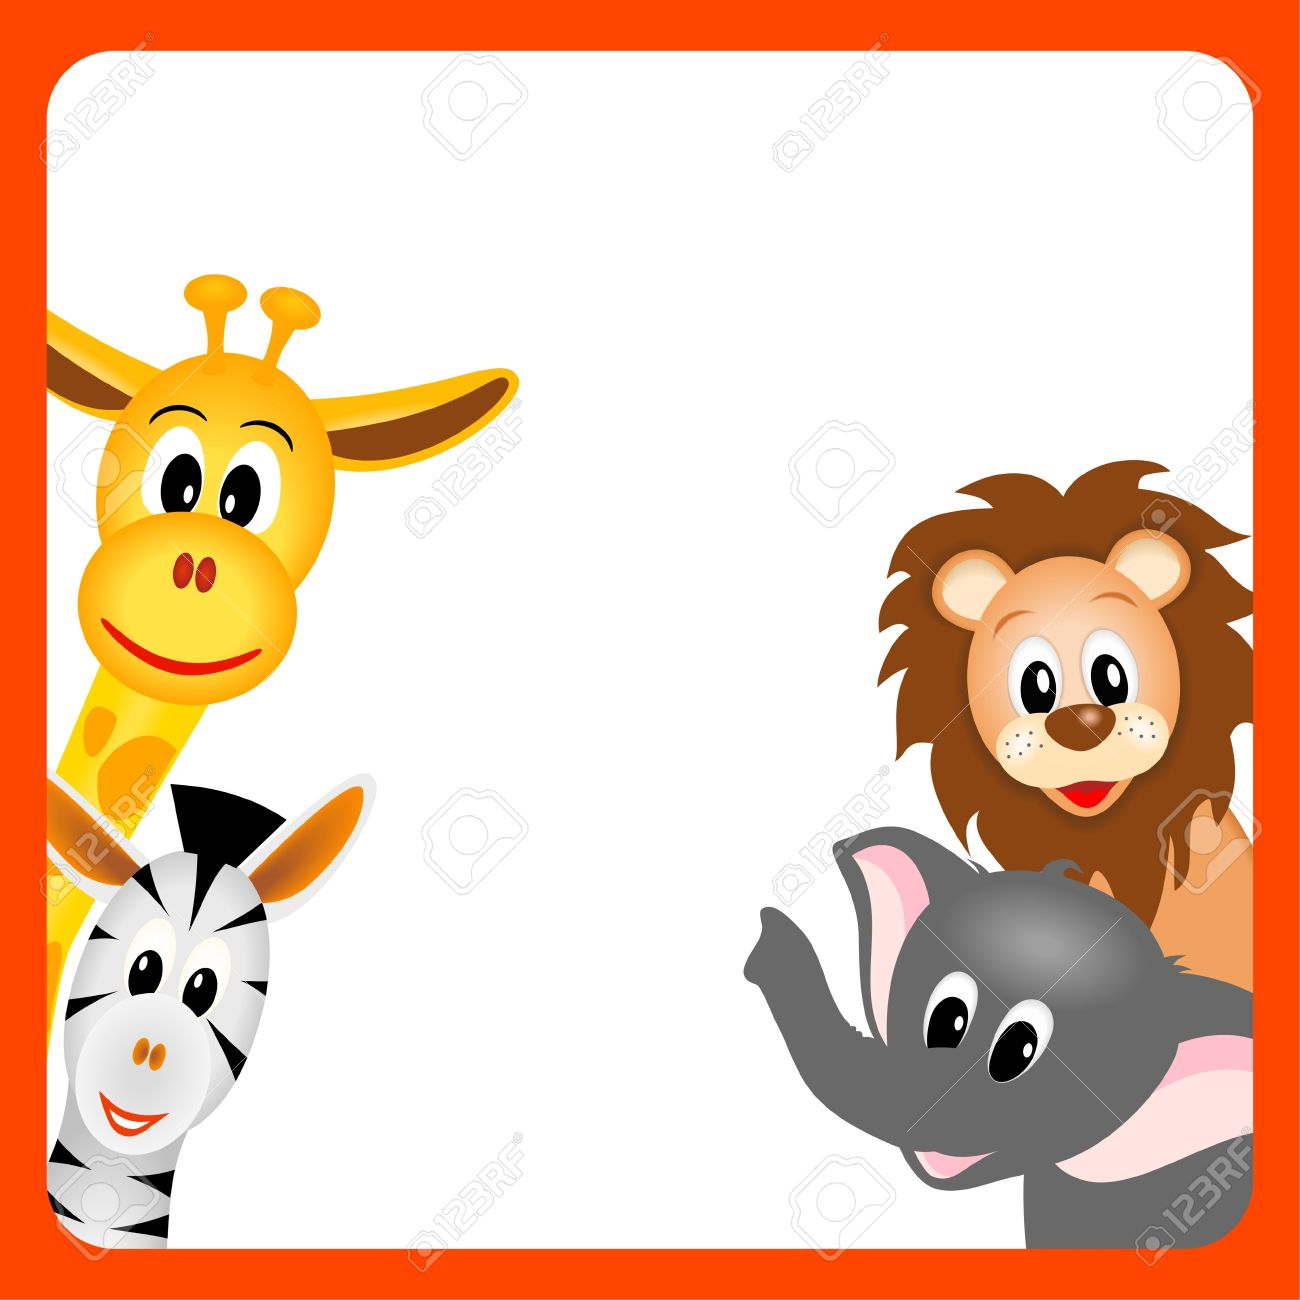 Little Giraffe, Elephant, Zebra And Lion On White Background.